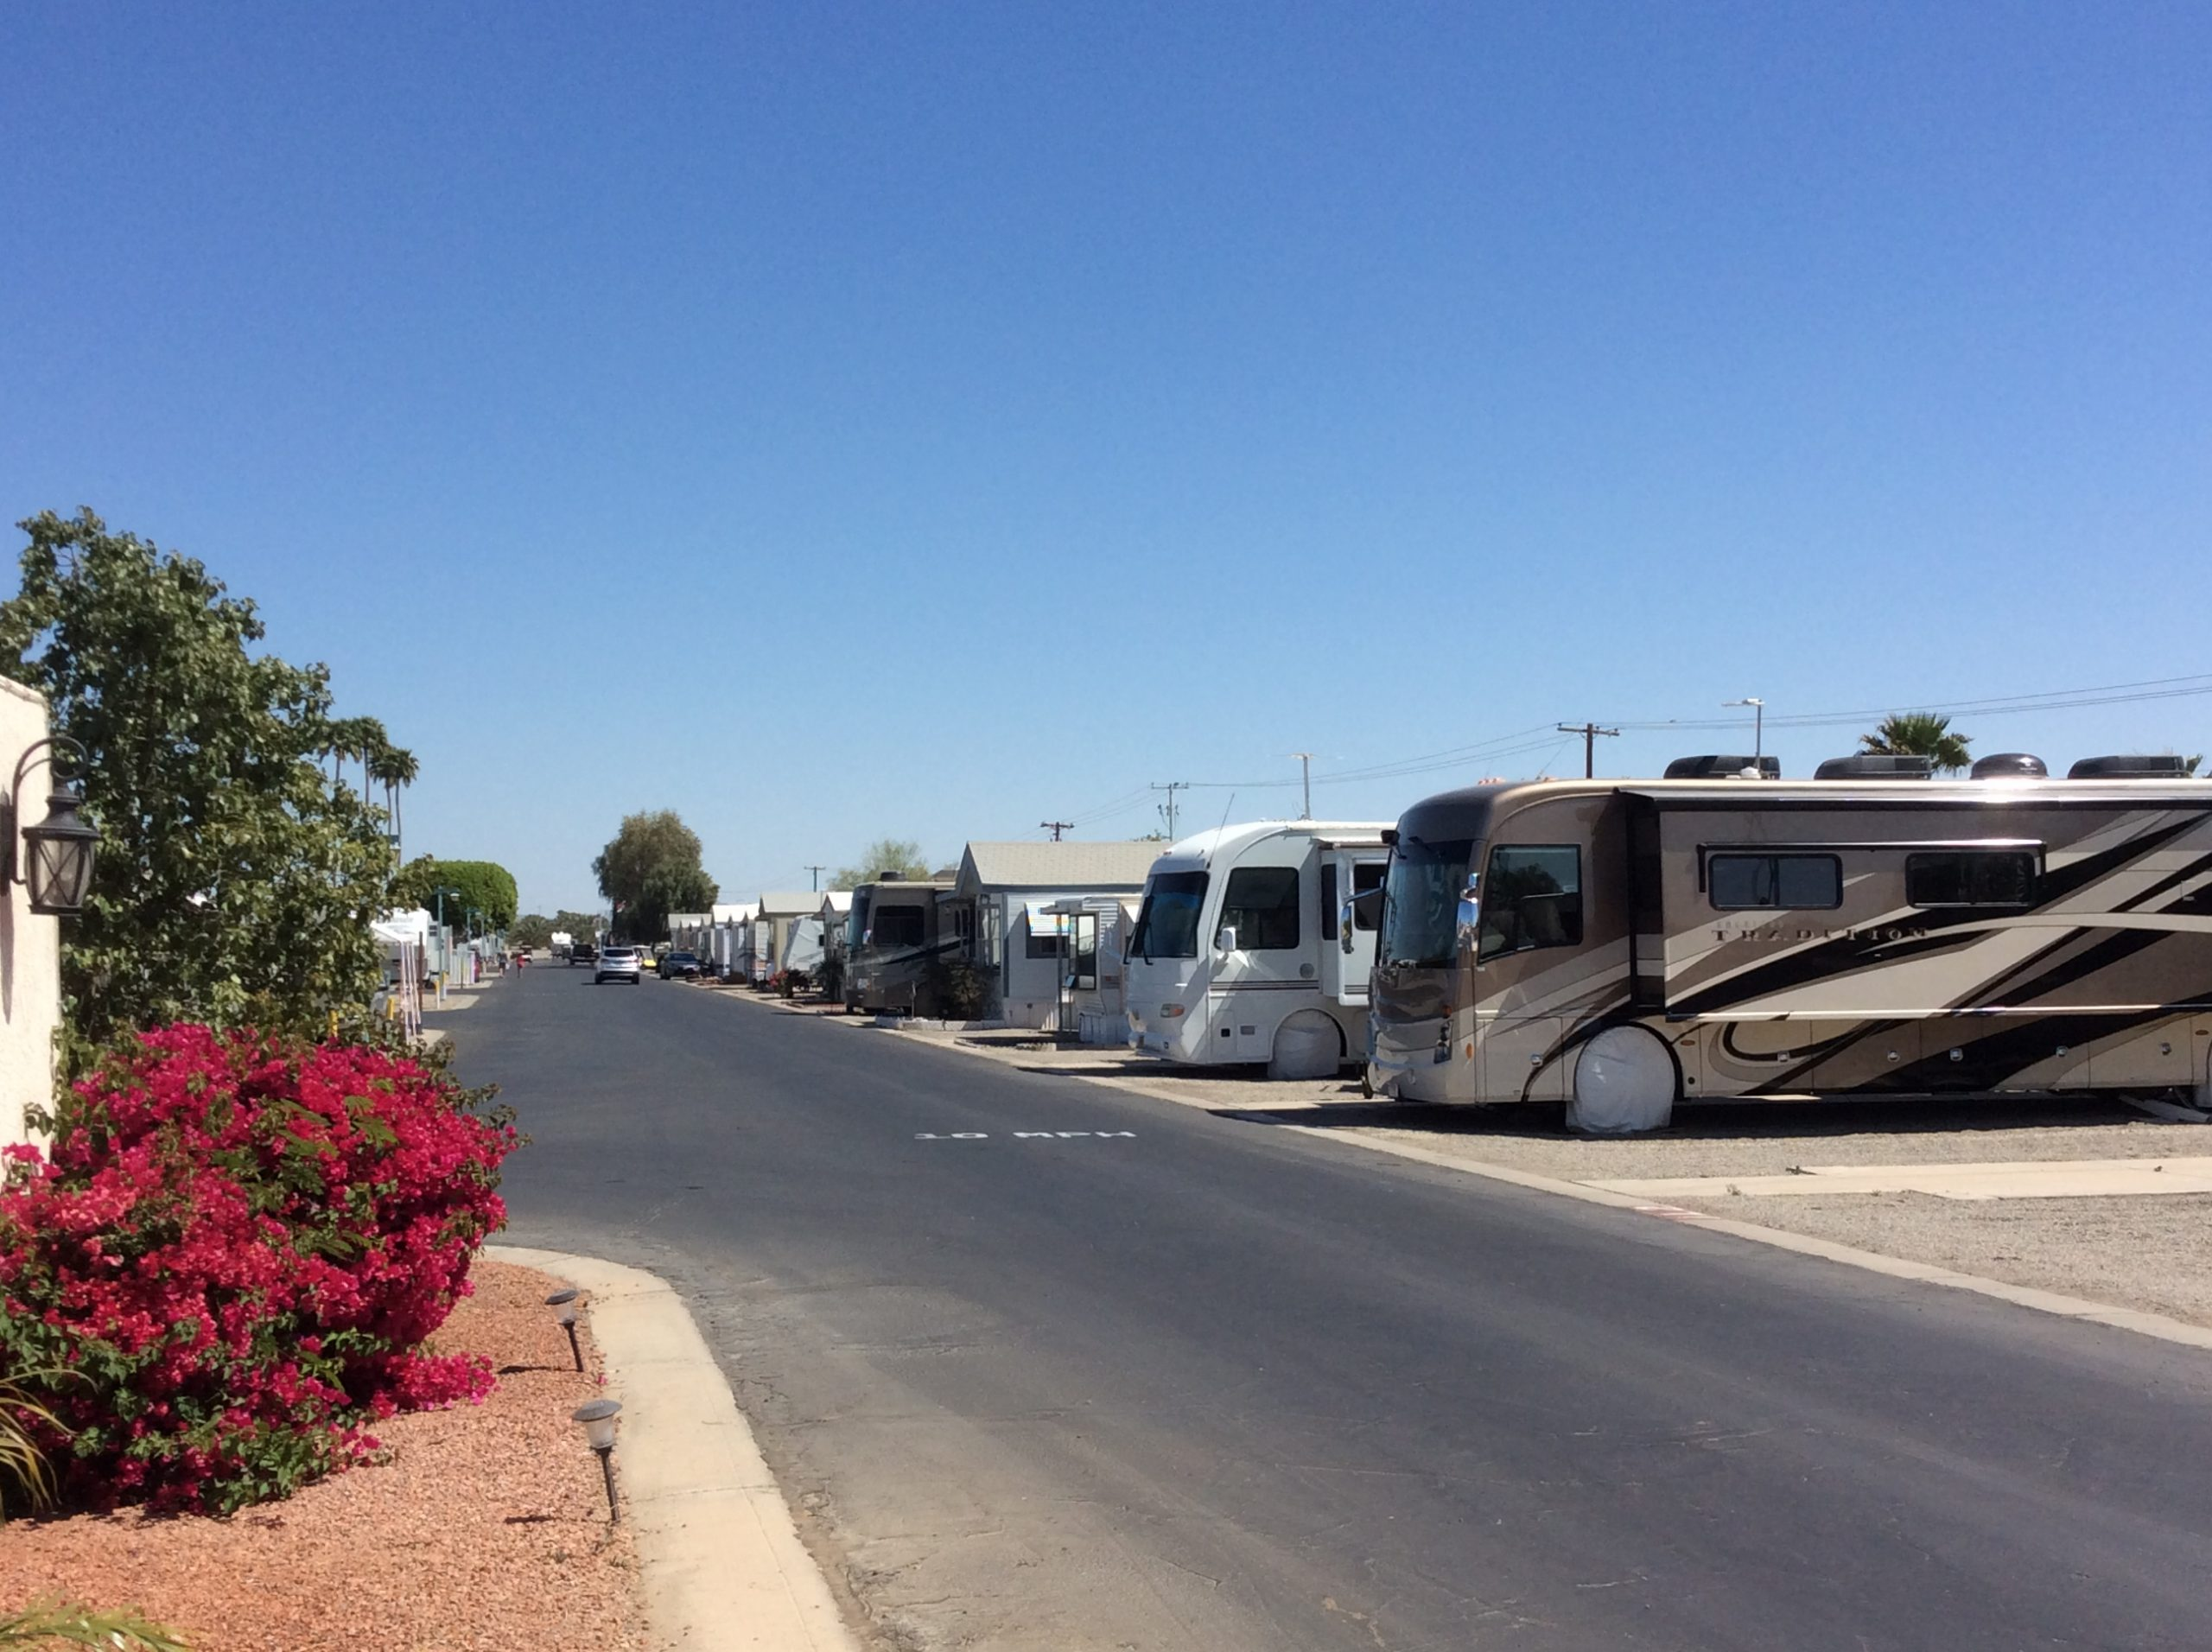 Villa Alameda RV Resort